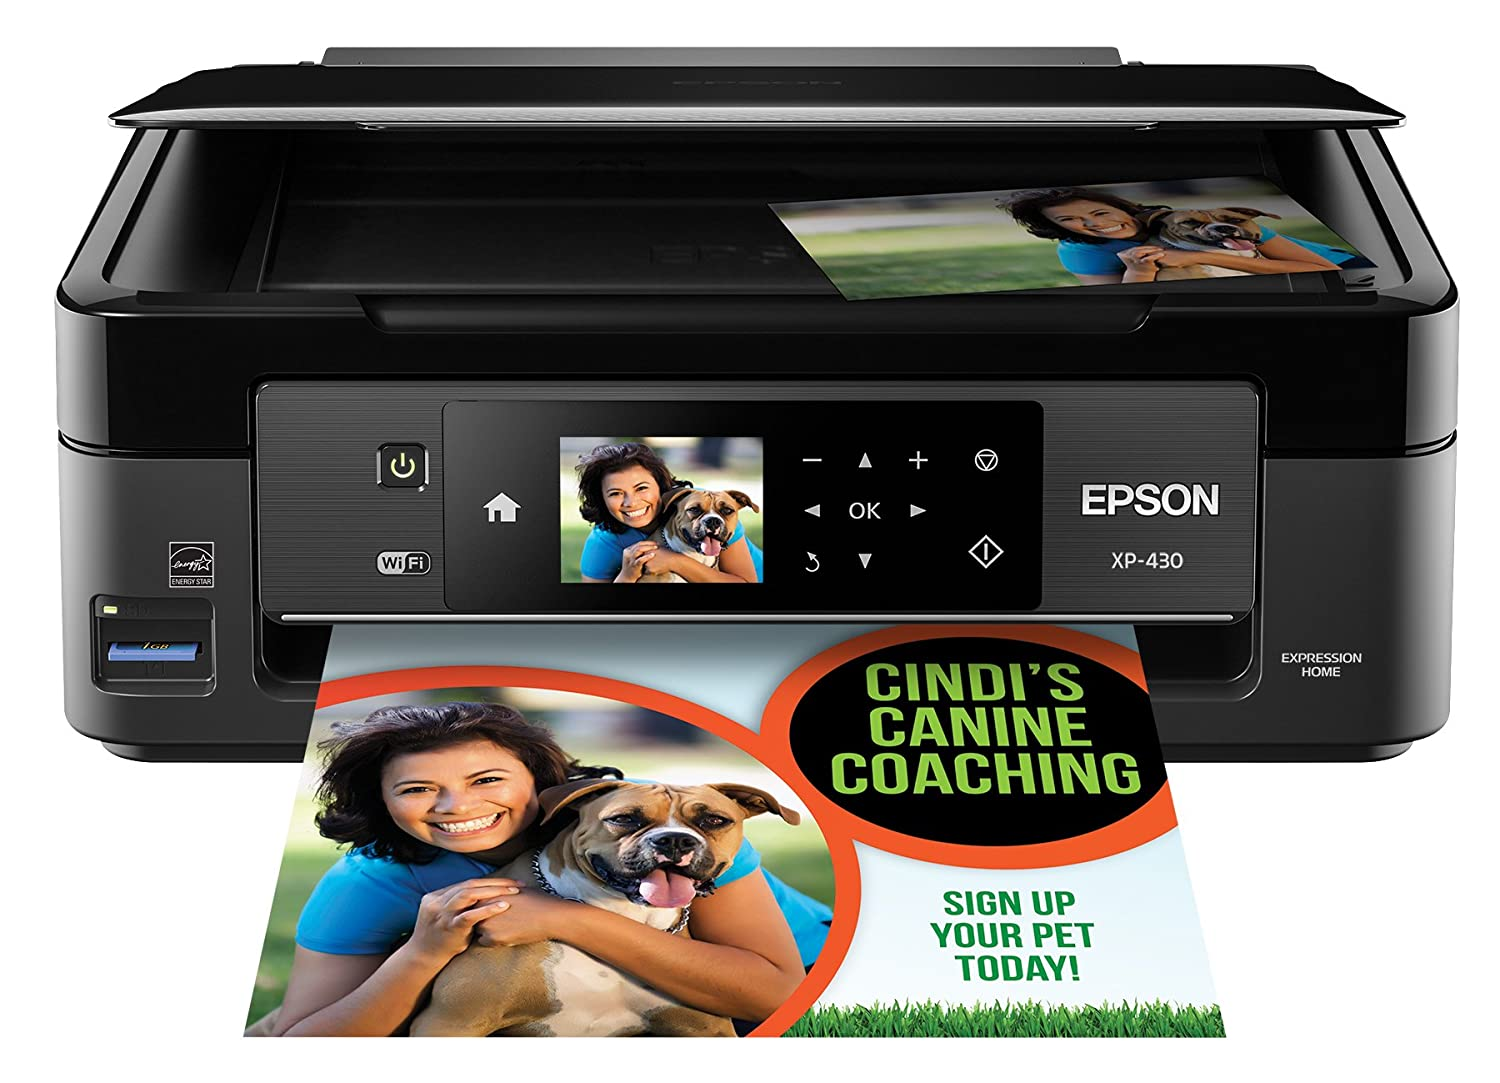 Epson Expression Home XP-430 Photo Printer